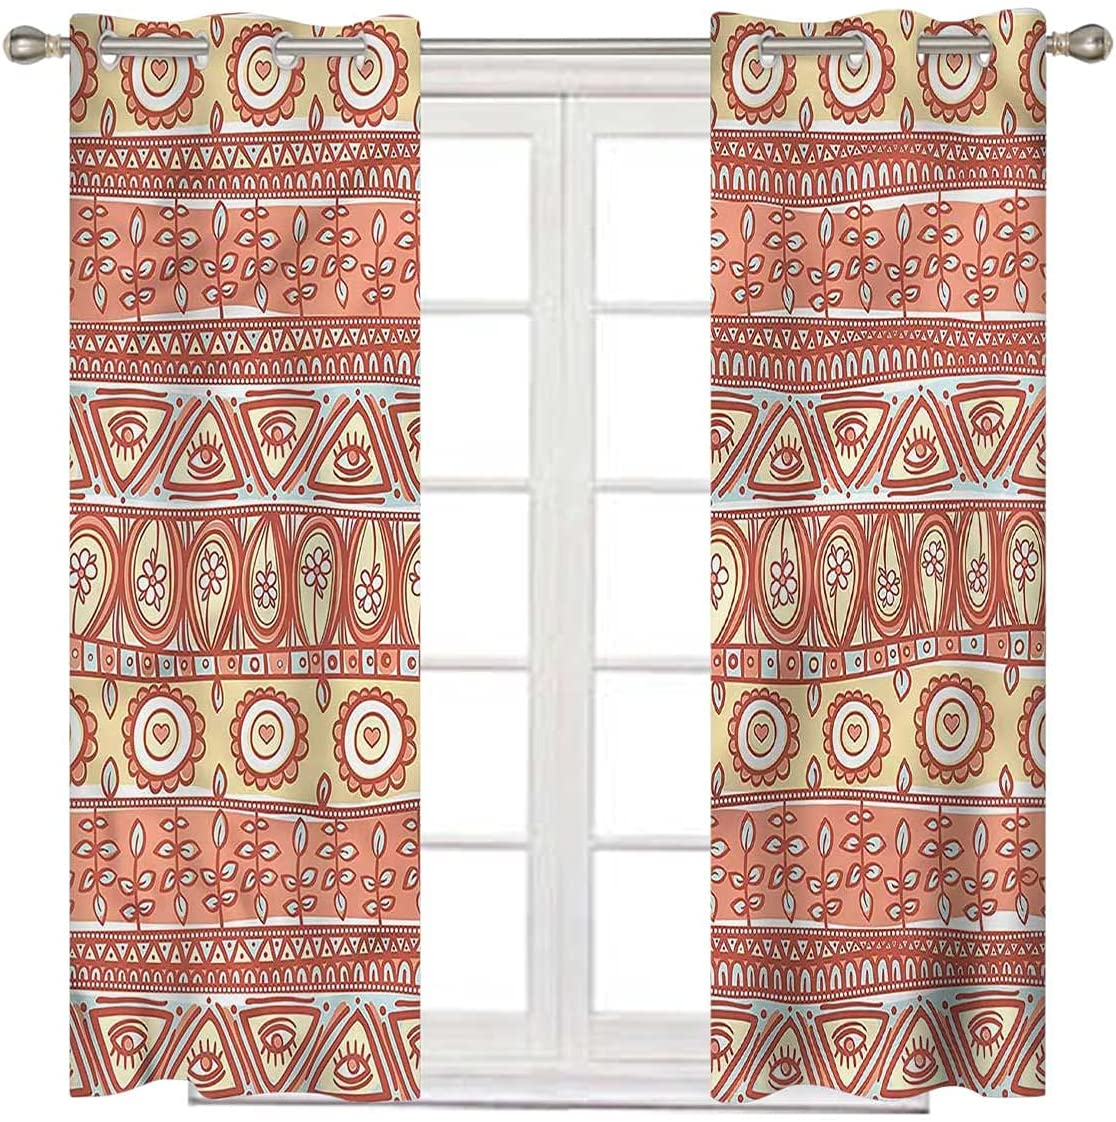 Yellow and online shop Brown Blackout Curtain Liners Long Large special price Inch 63 Fol Native